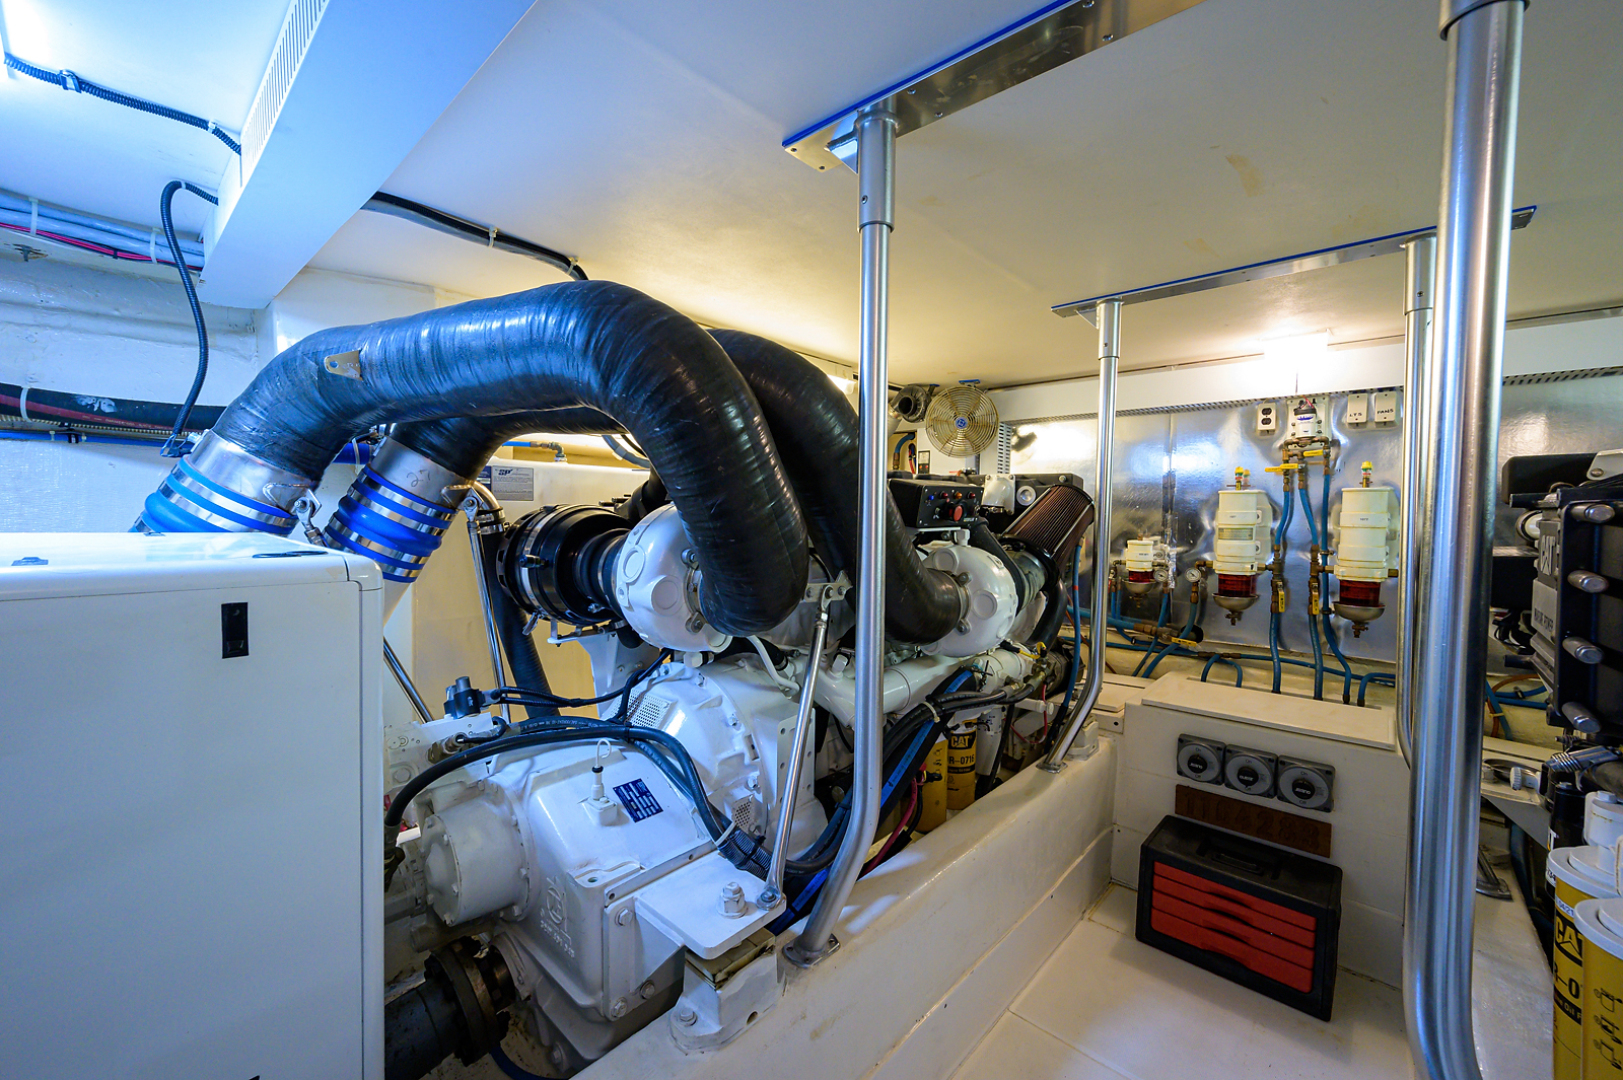 Ocean Yachts-Odyssey 2005-MISS JAN Palm Beach Gardens-Florida-United States-Engine Room-1387047 | Thumbnail